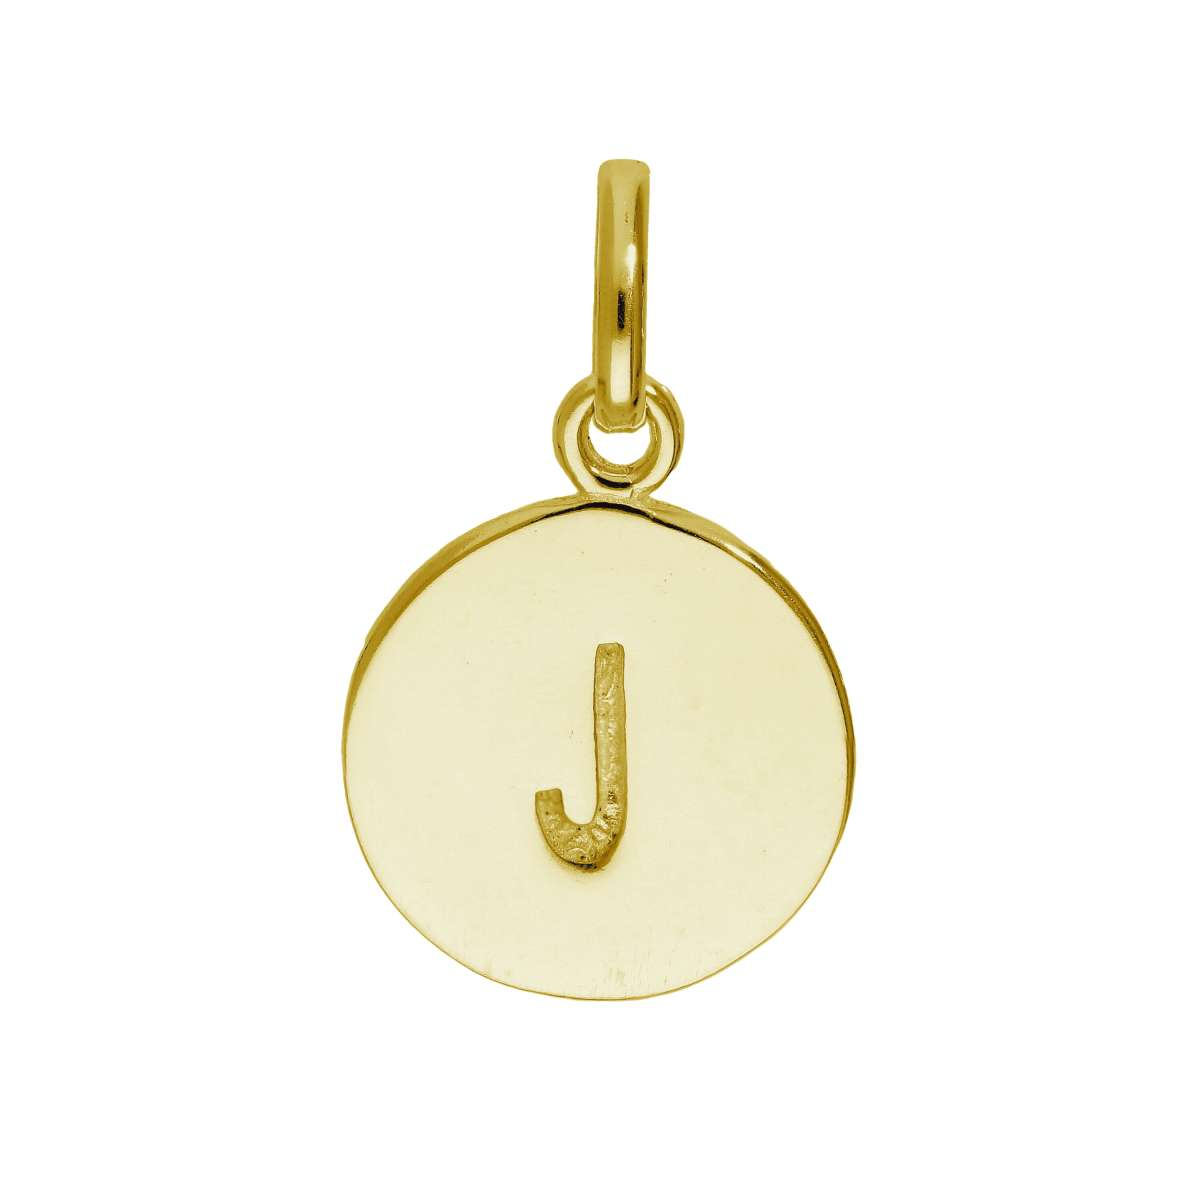 Alterative image for Gold Plated Sterling Silver Engravable Letter J Charm